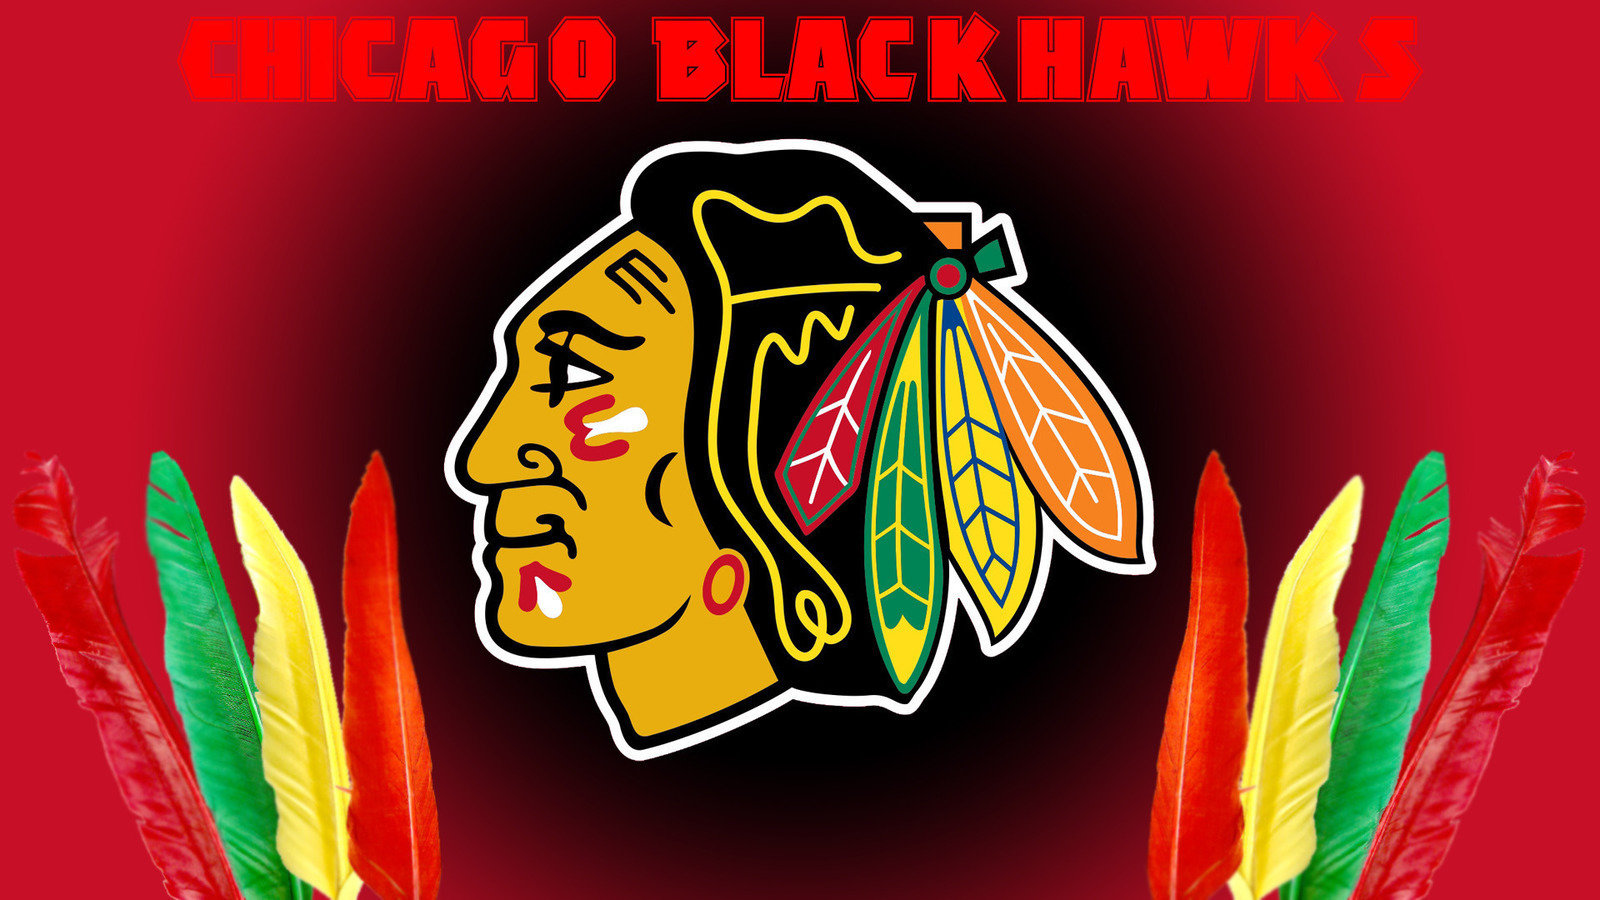 blackhawks - photo #15